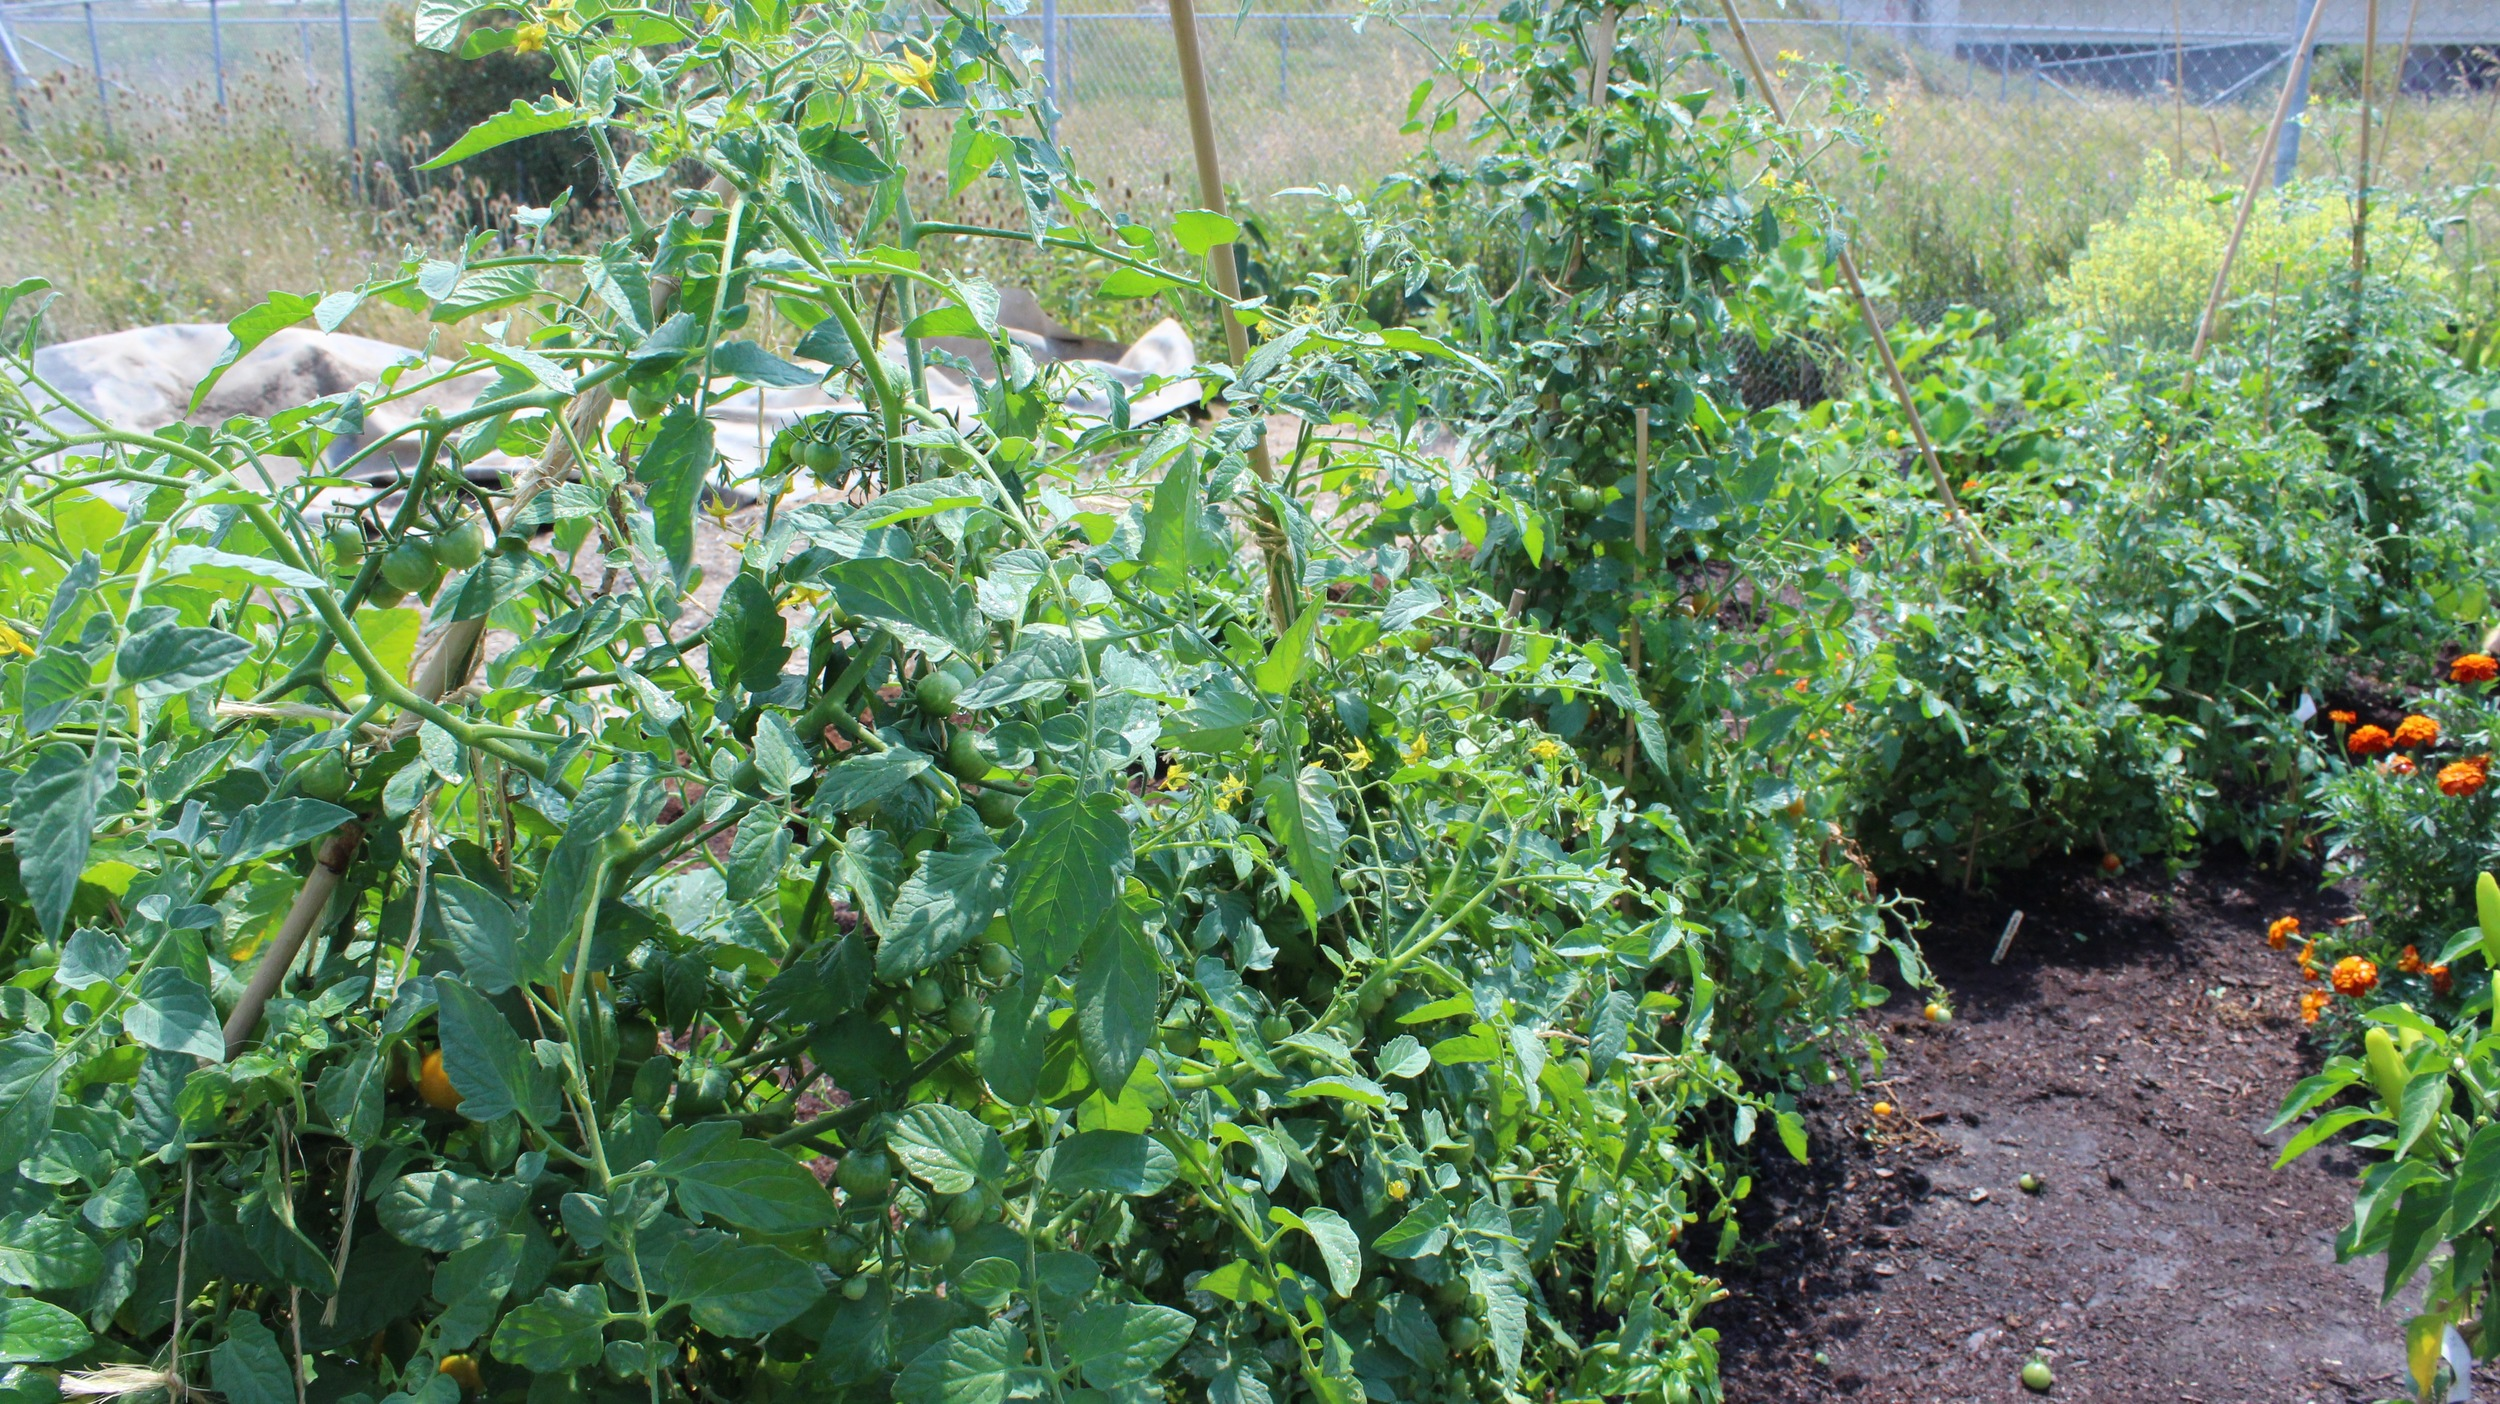 Our tomato plants, after being harvested